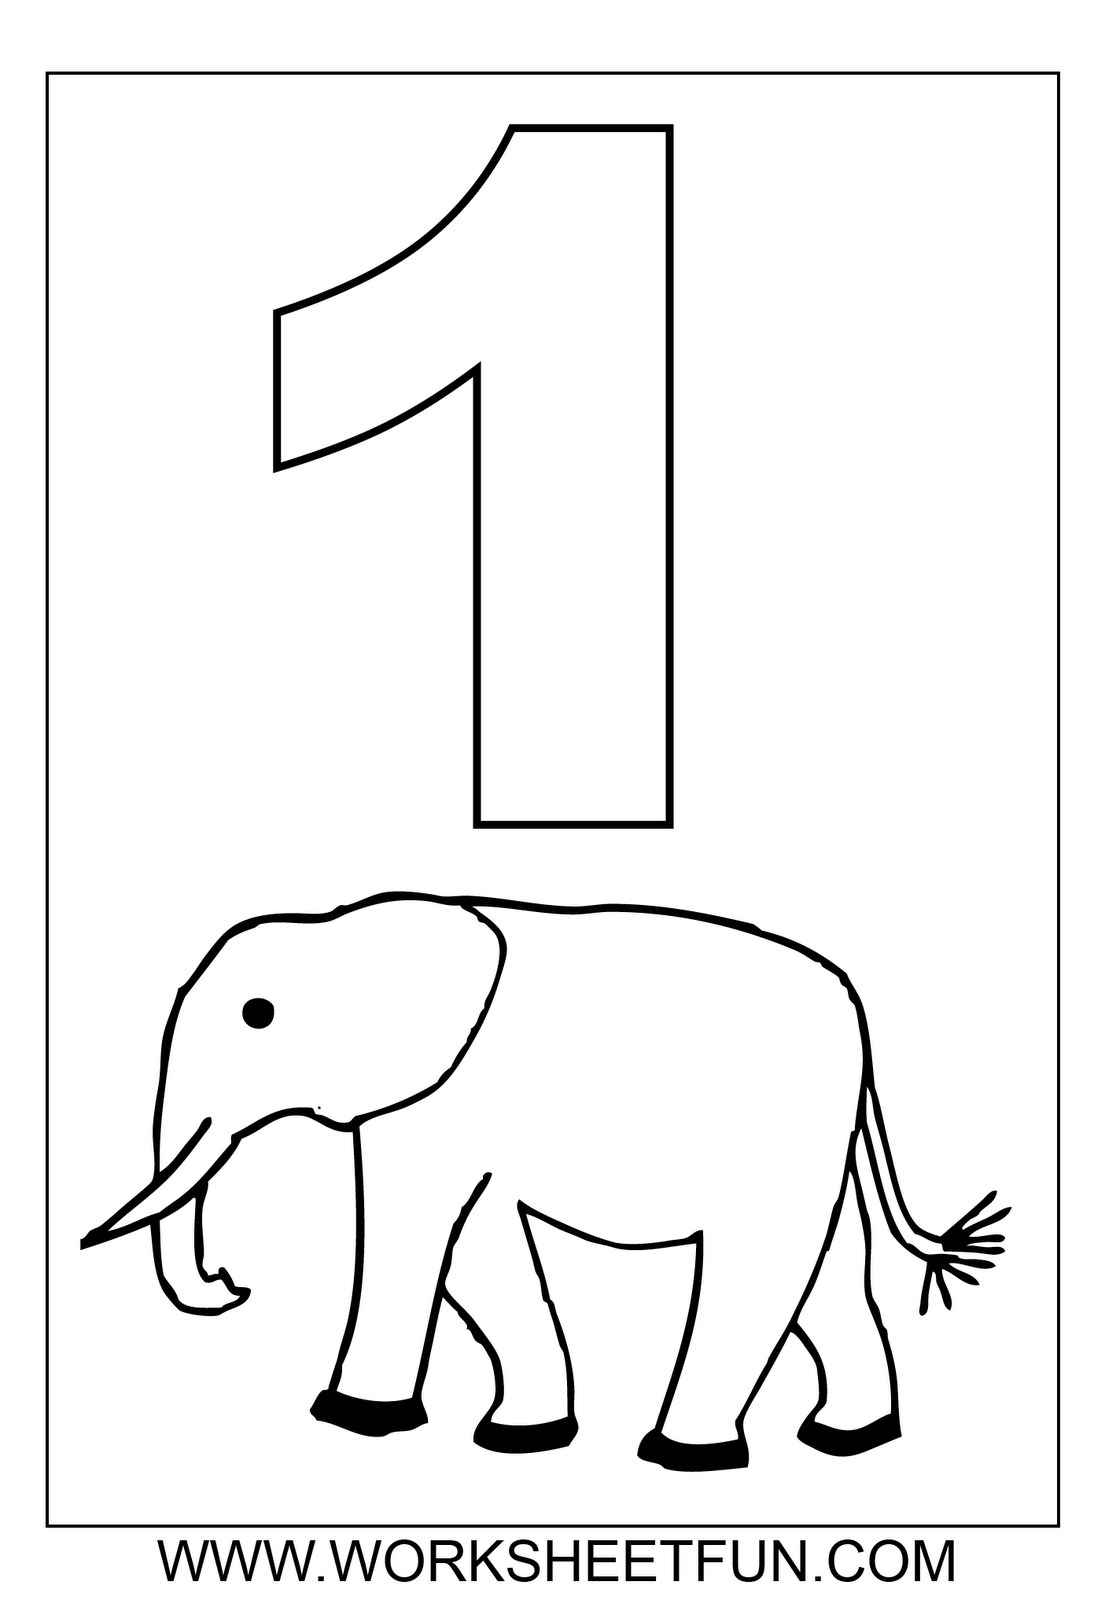 Numbers colouring sheets only coloring pages for Number 11 coloring page